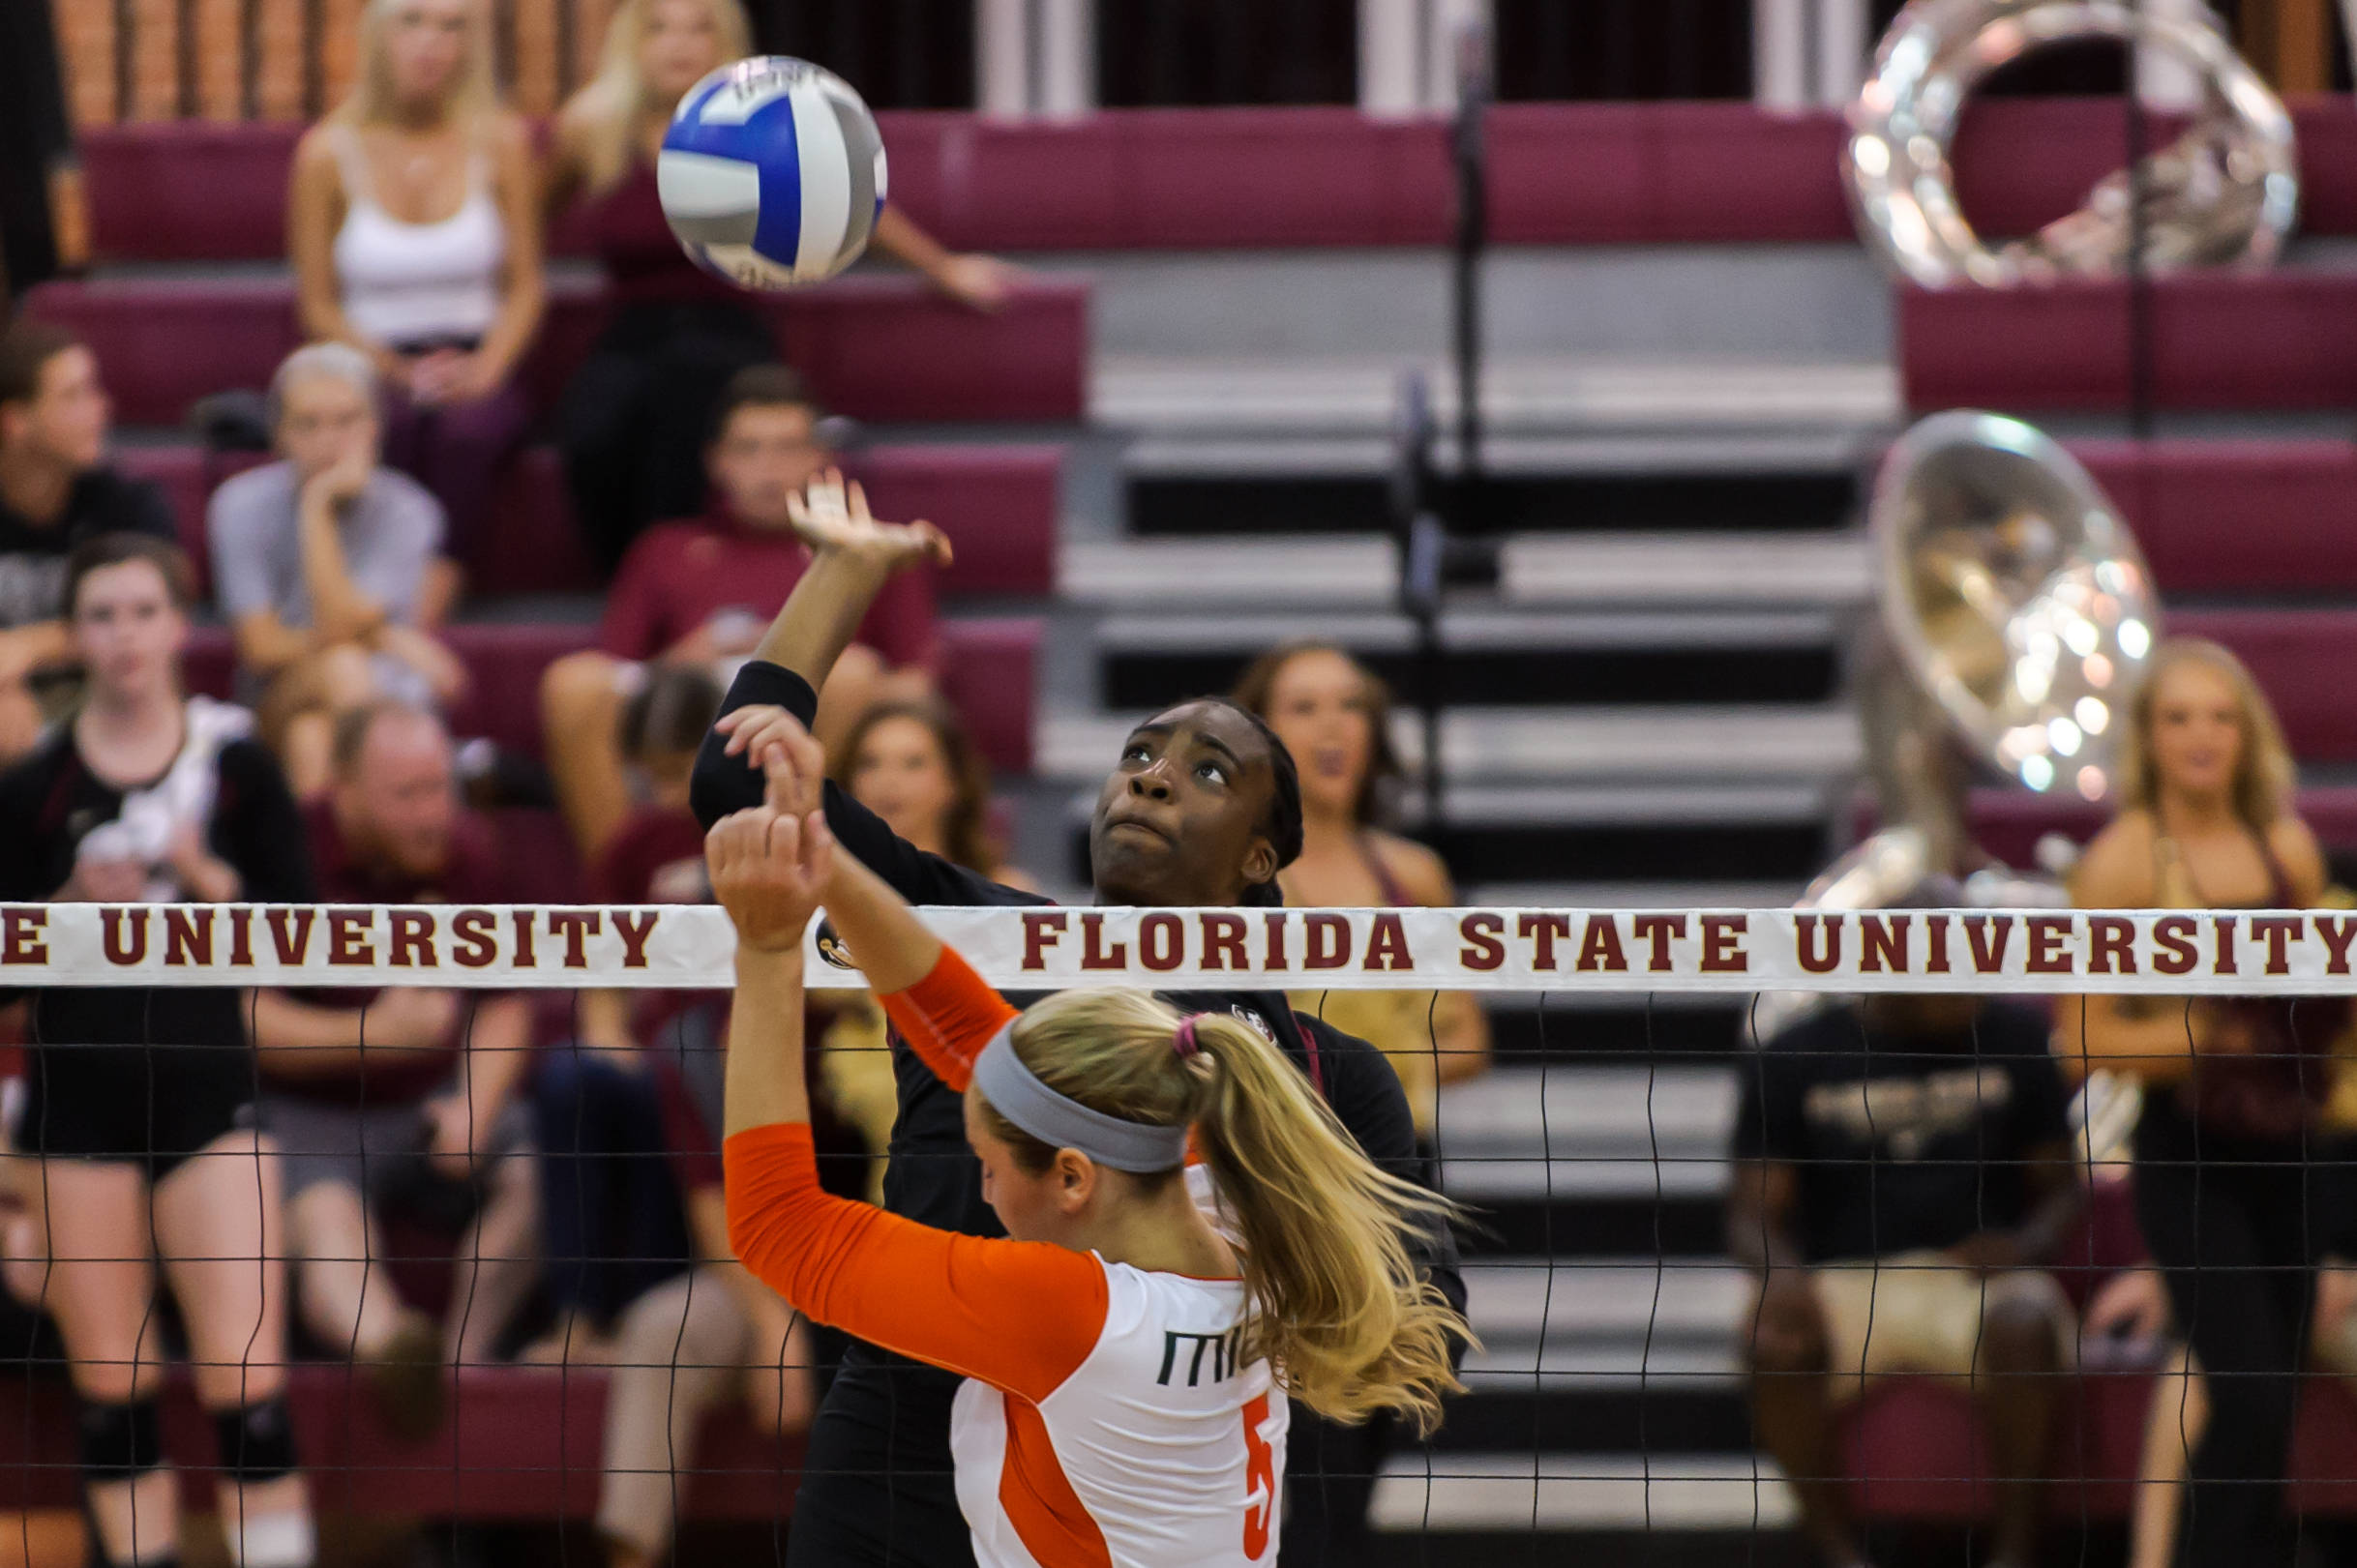 Miami at Florida State